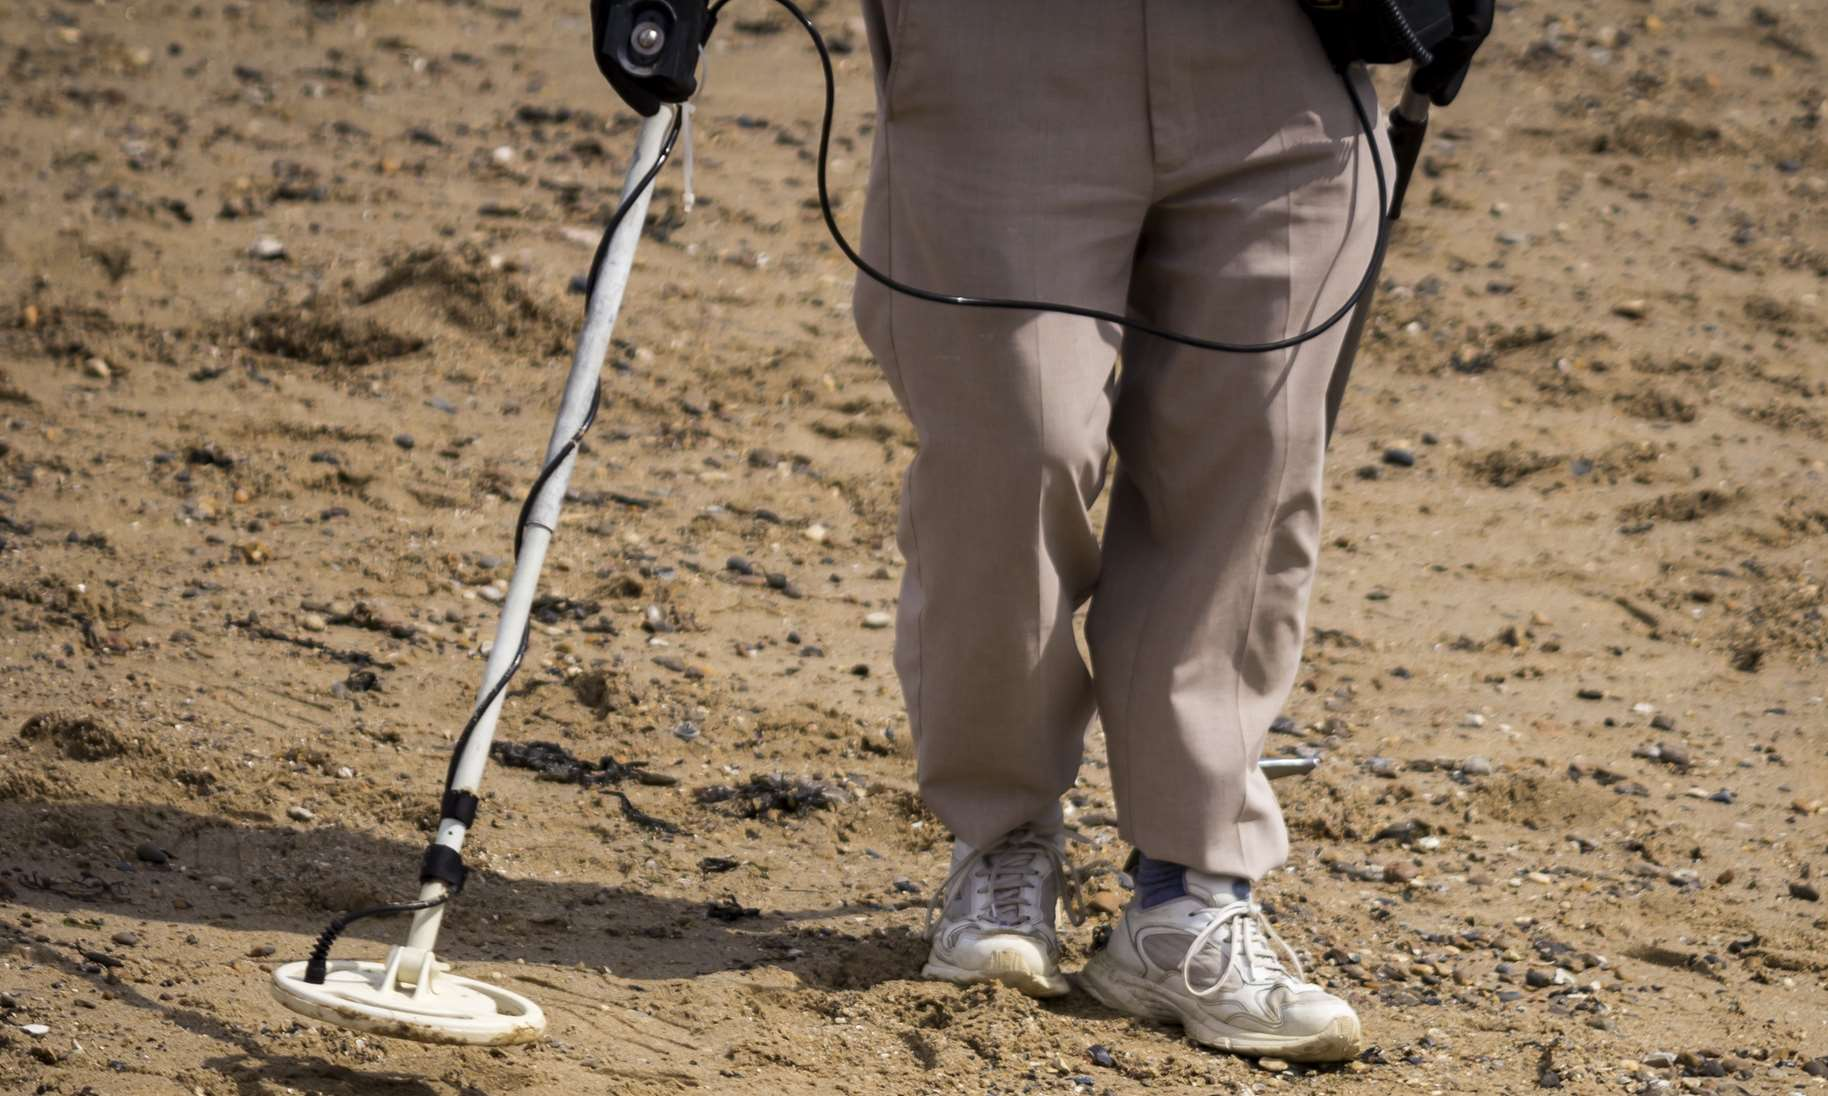 The oyster company has accused detectorists of 'stealing' finds from the beach.